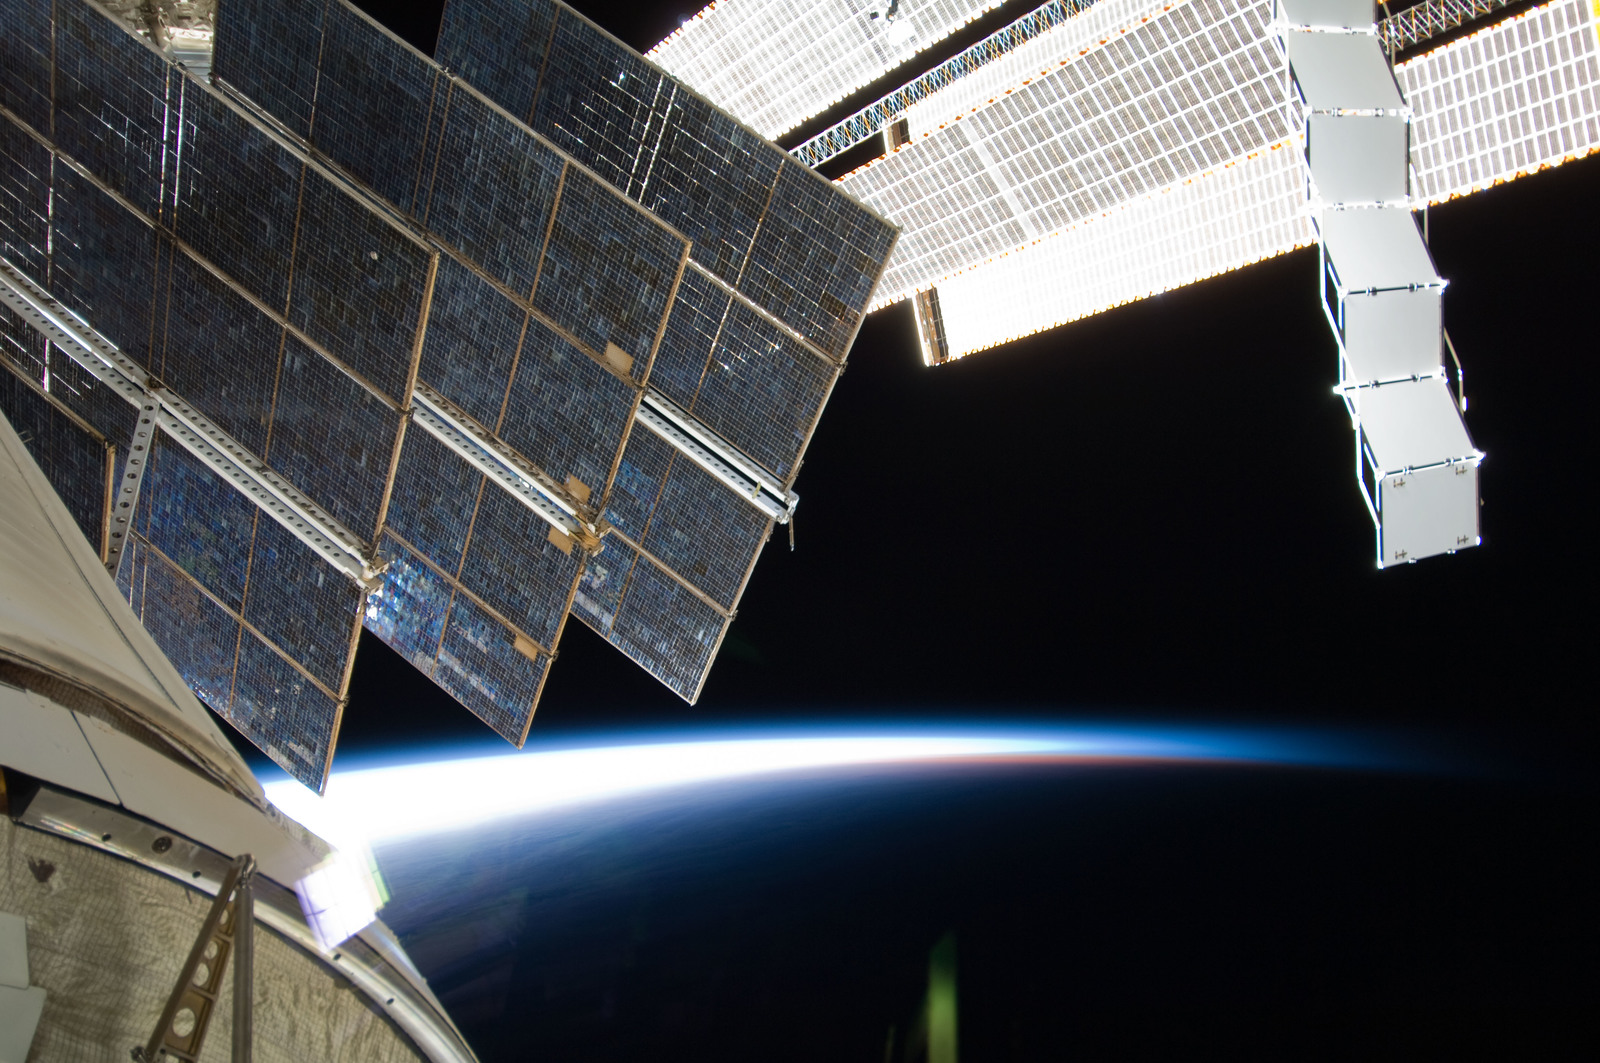 S129E007484 - STS-129 - Exterior view of ISS as seen from an MRM2/Poisk Window